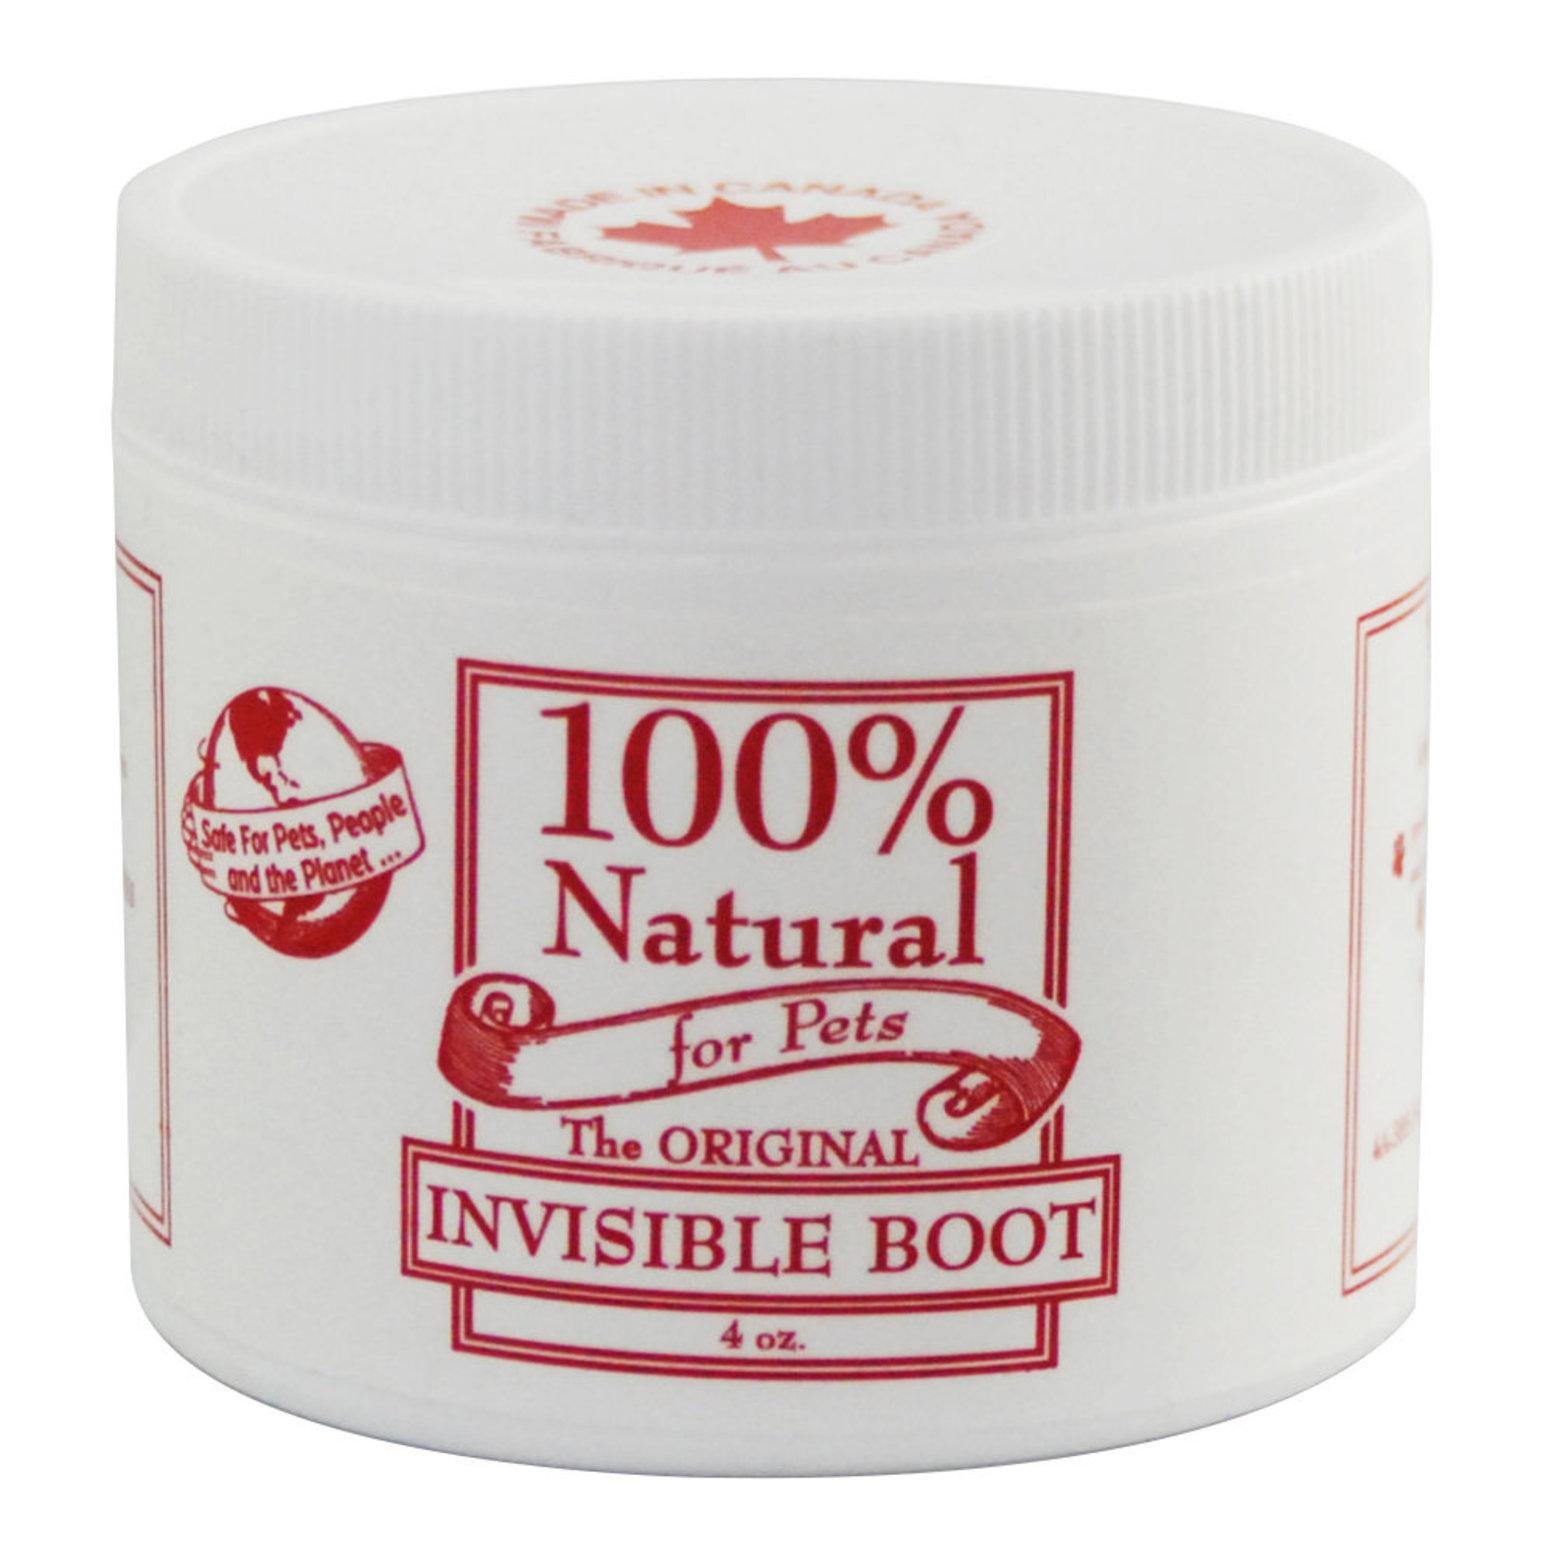 100% Natural for Pets Invisible Boot Cream for Dogs, 4-oz